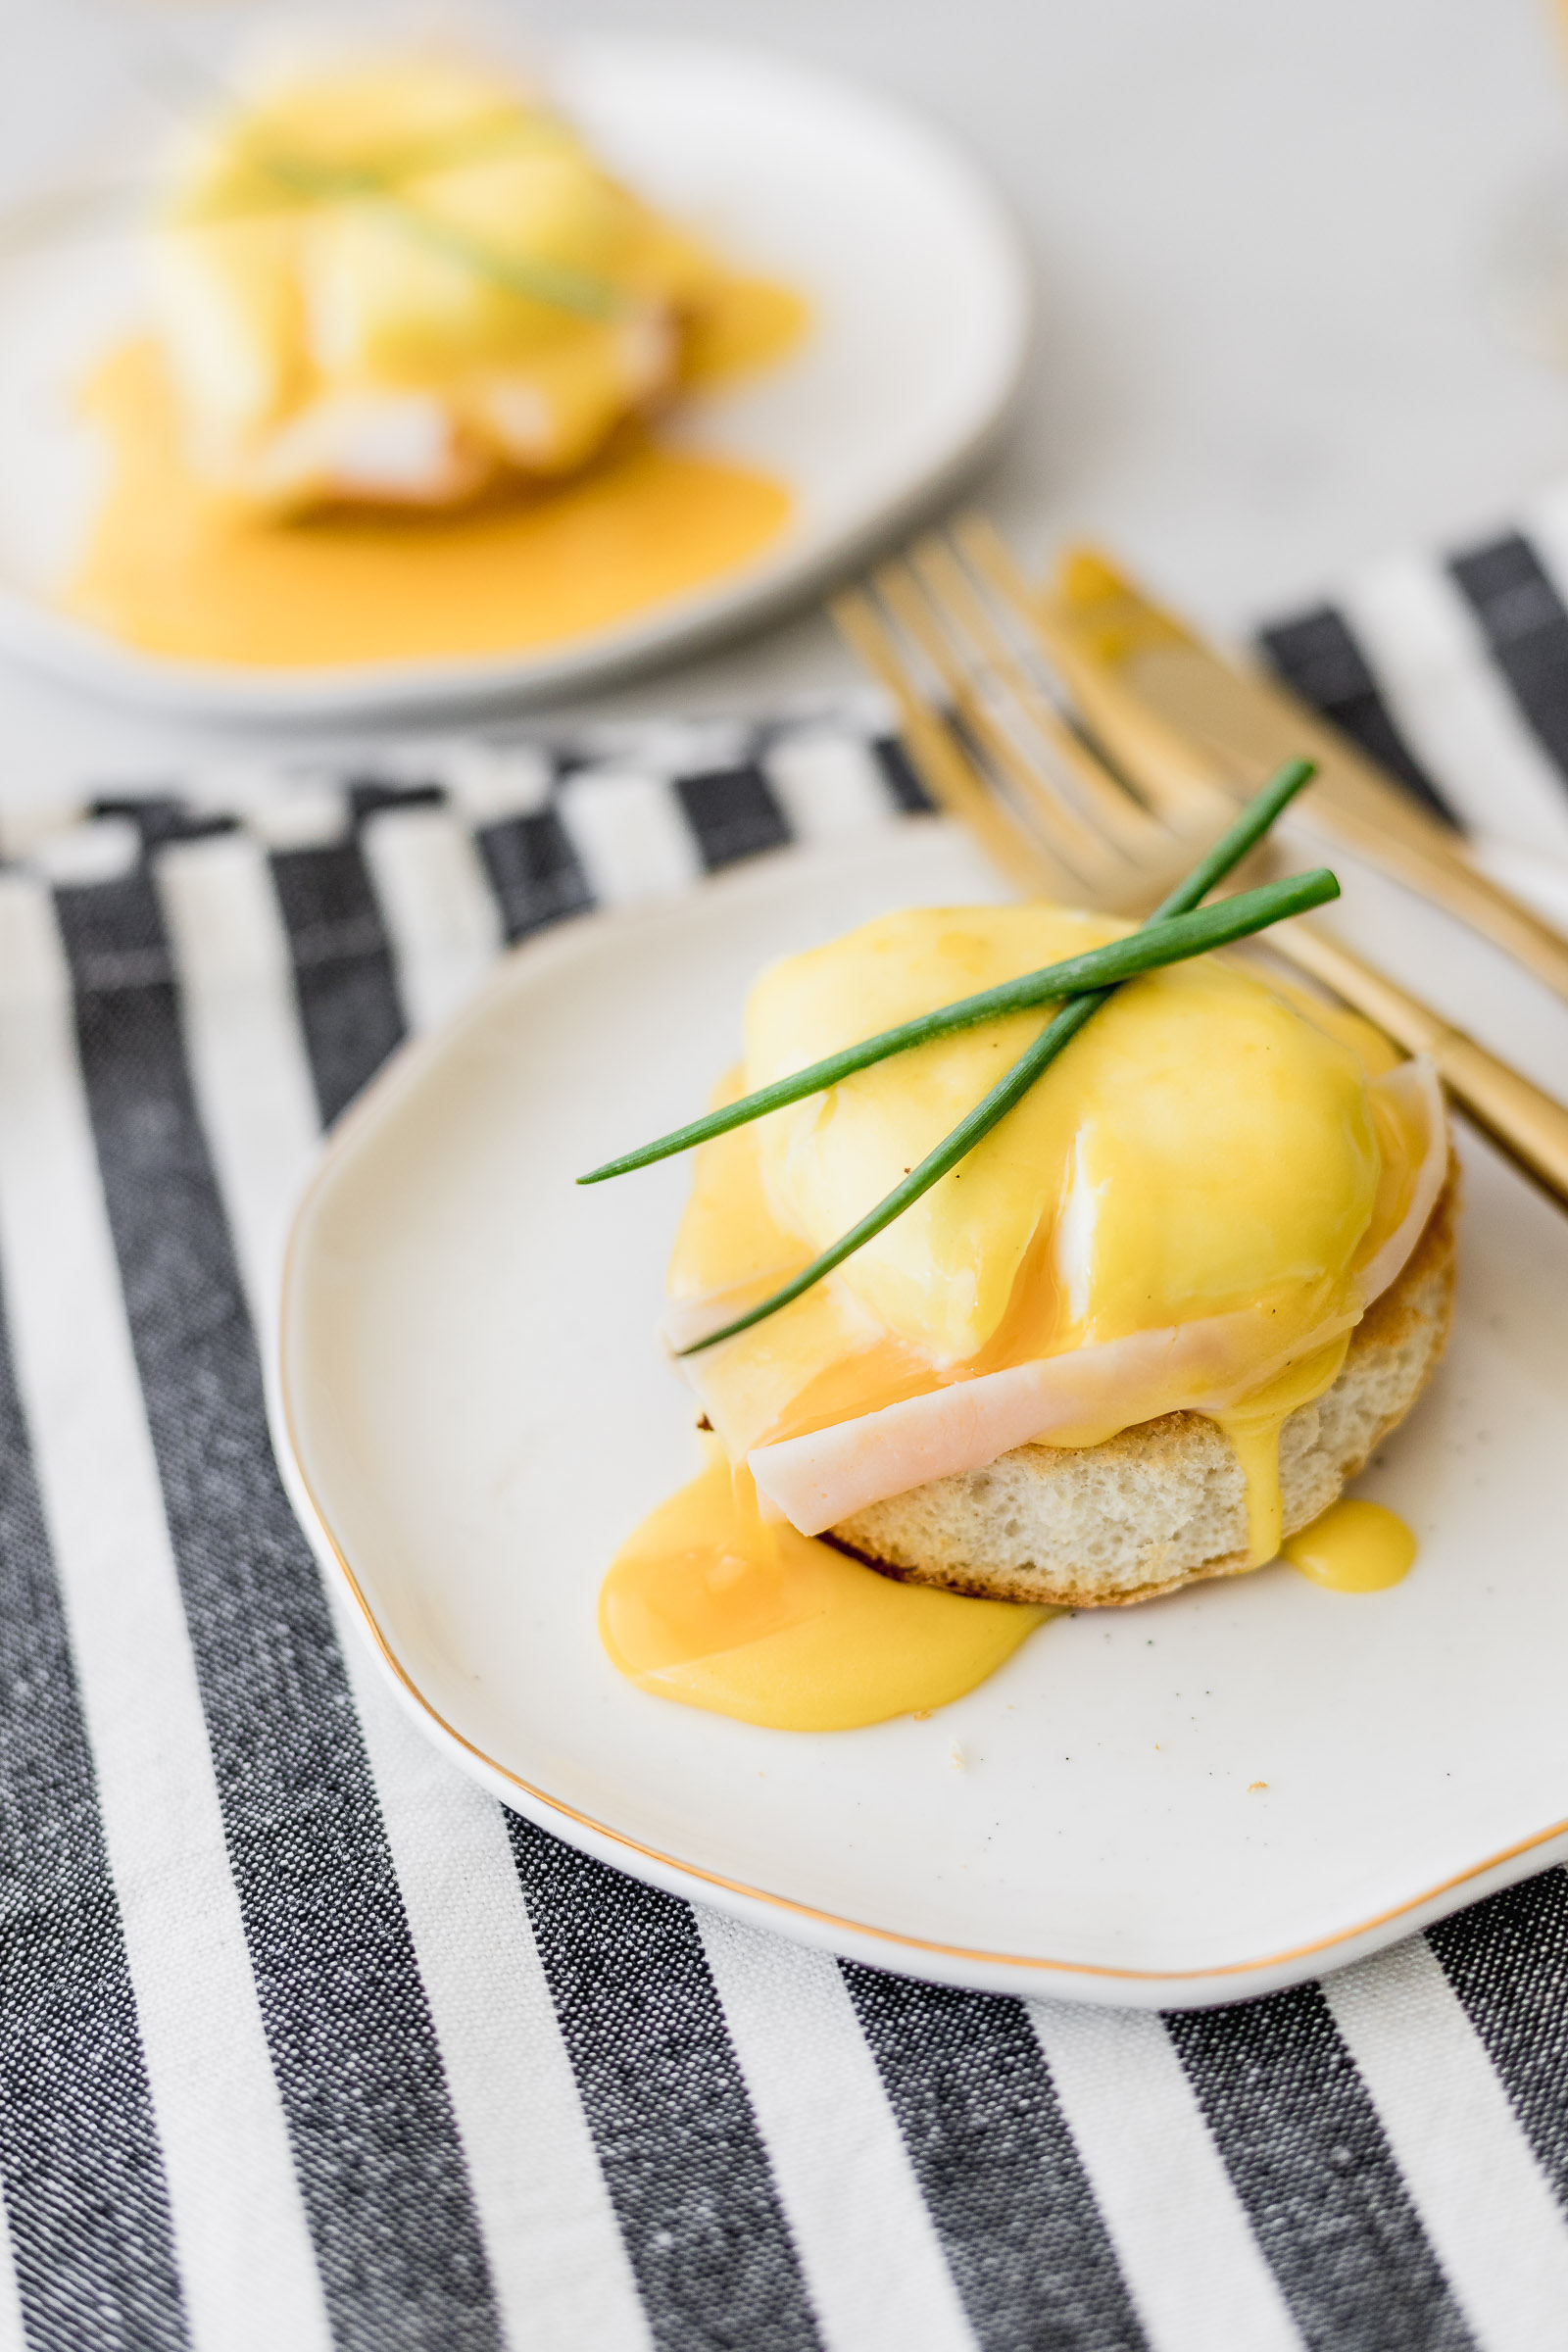 Hollandaise Sauce Error in the name does not interfere with taste